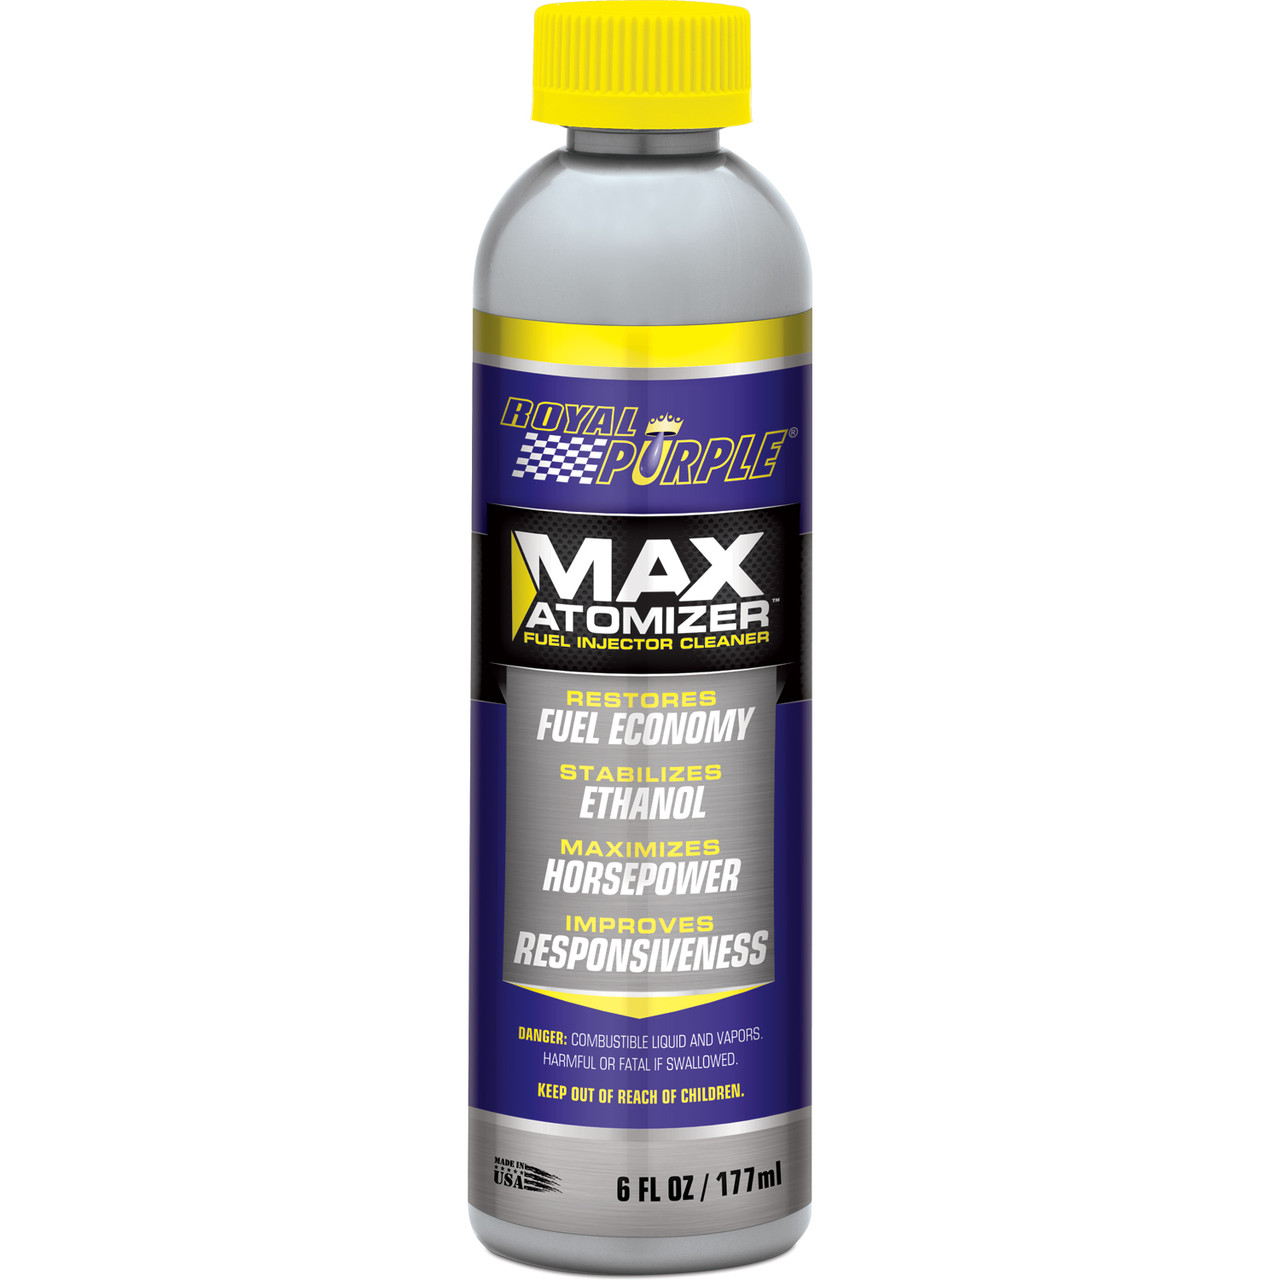 MAX ATOMIZER FUEL INJECTOR CLEANER